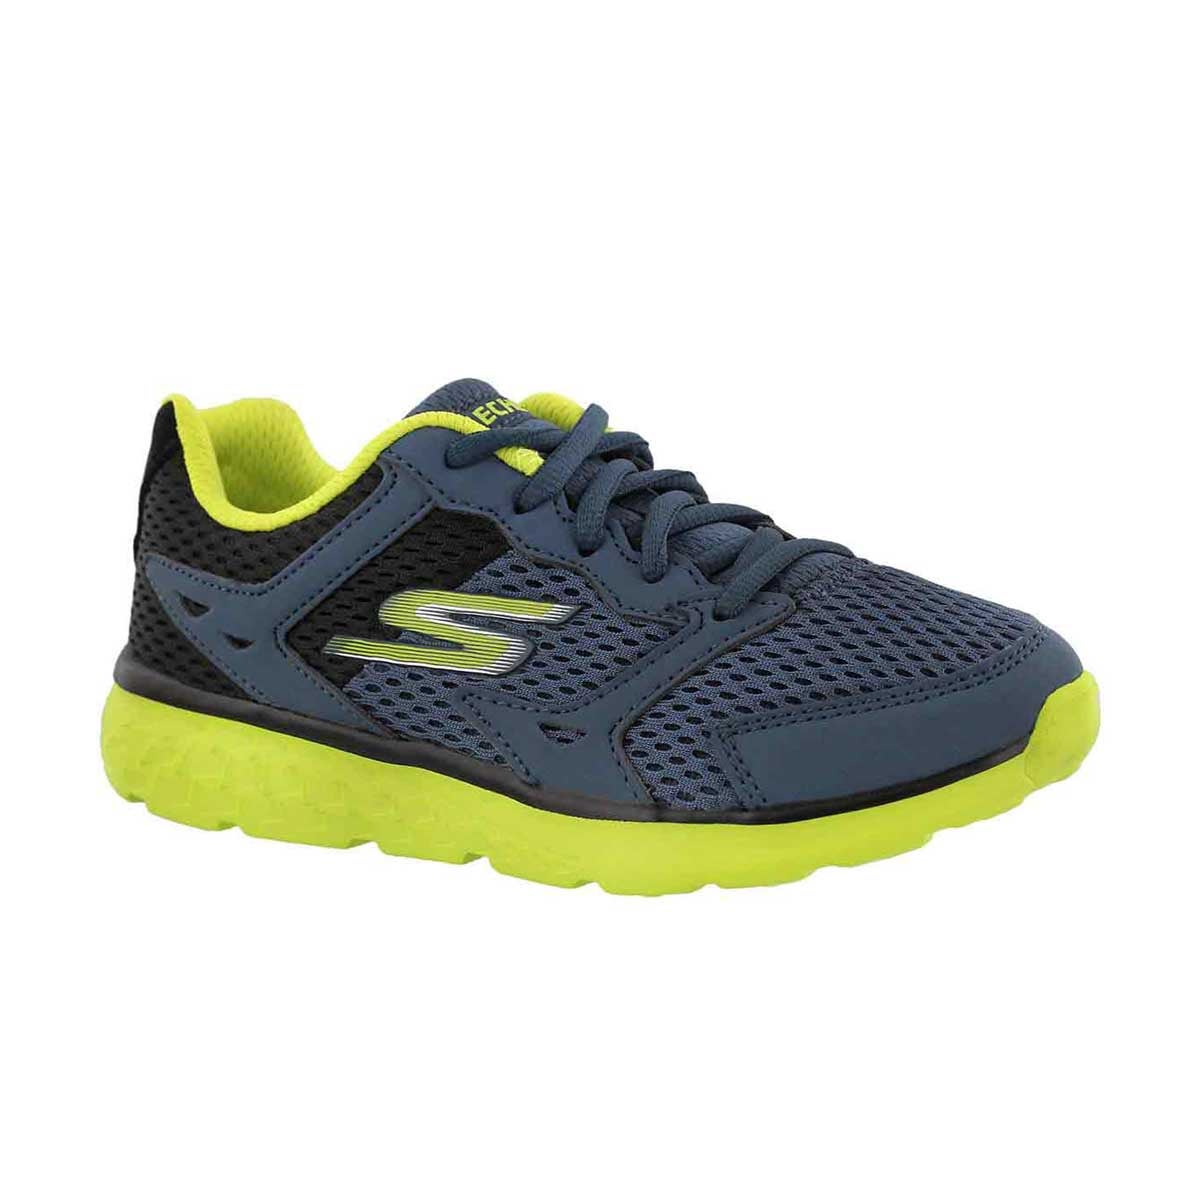 Boys' GOrun 400 blue/lime lace up sneakers